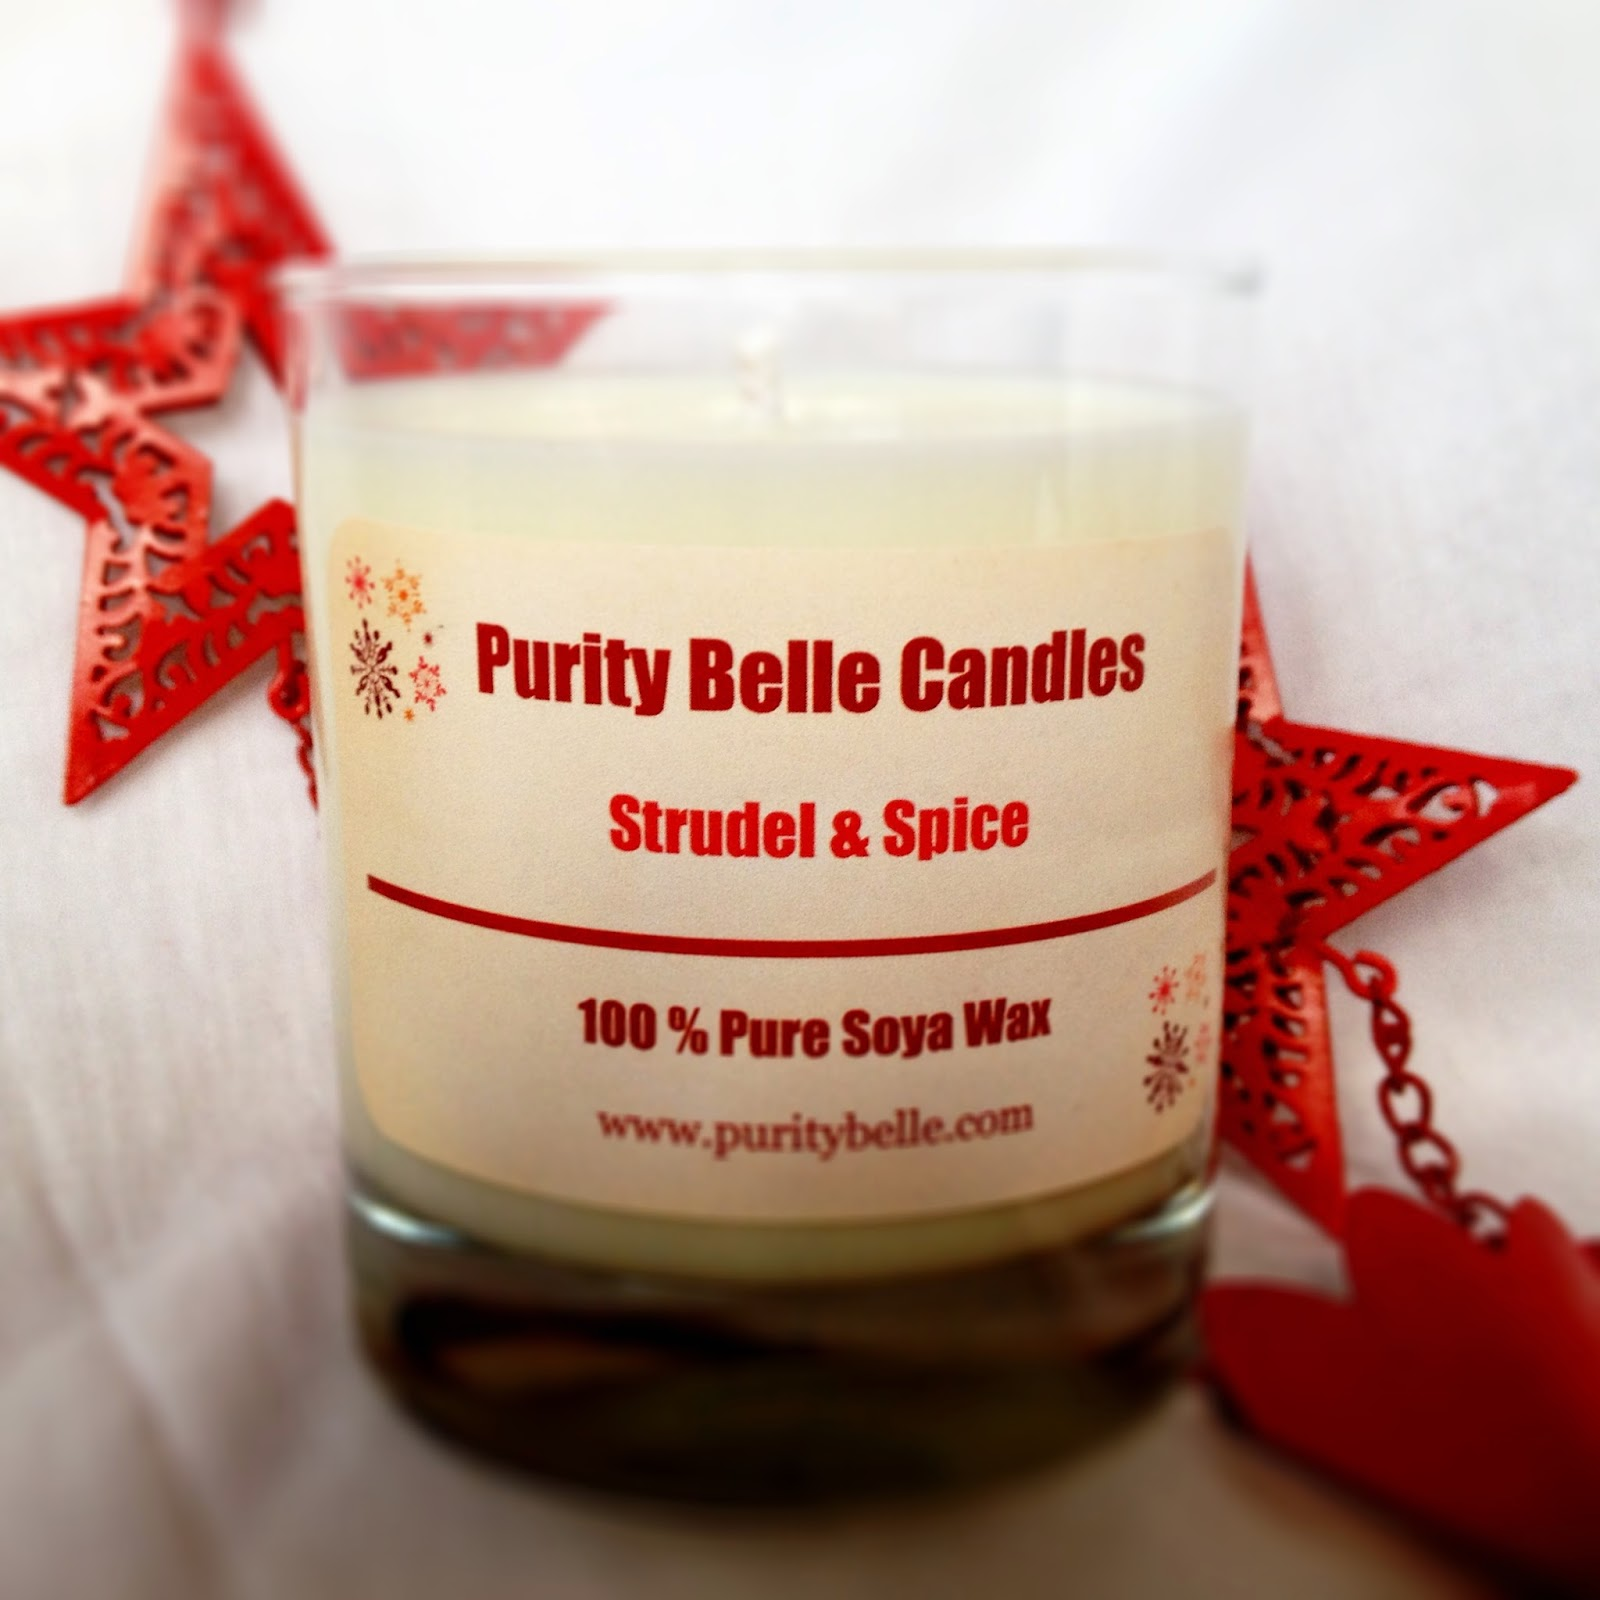 Strudel & Spice Soy Candle Purity Belle